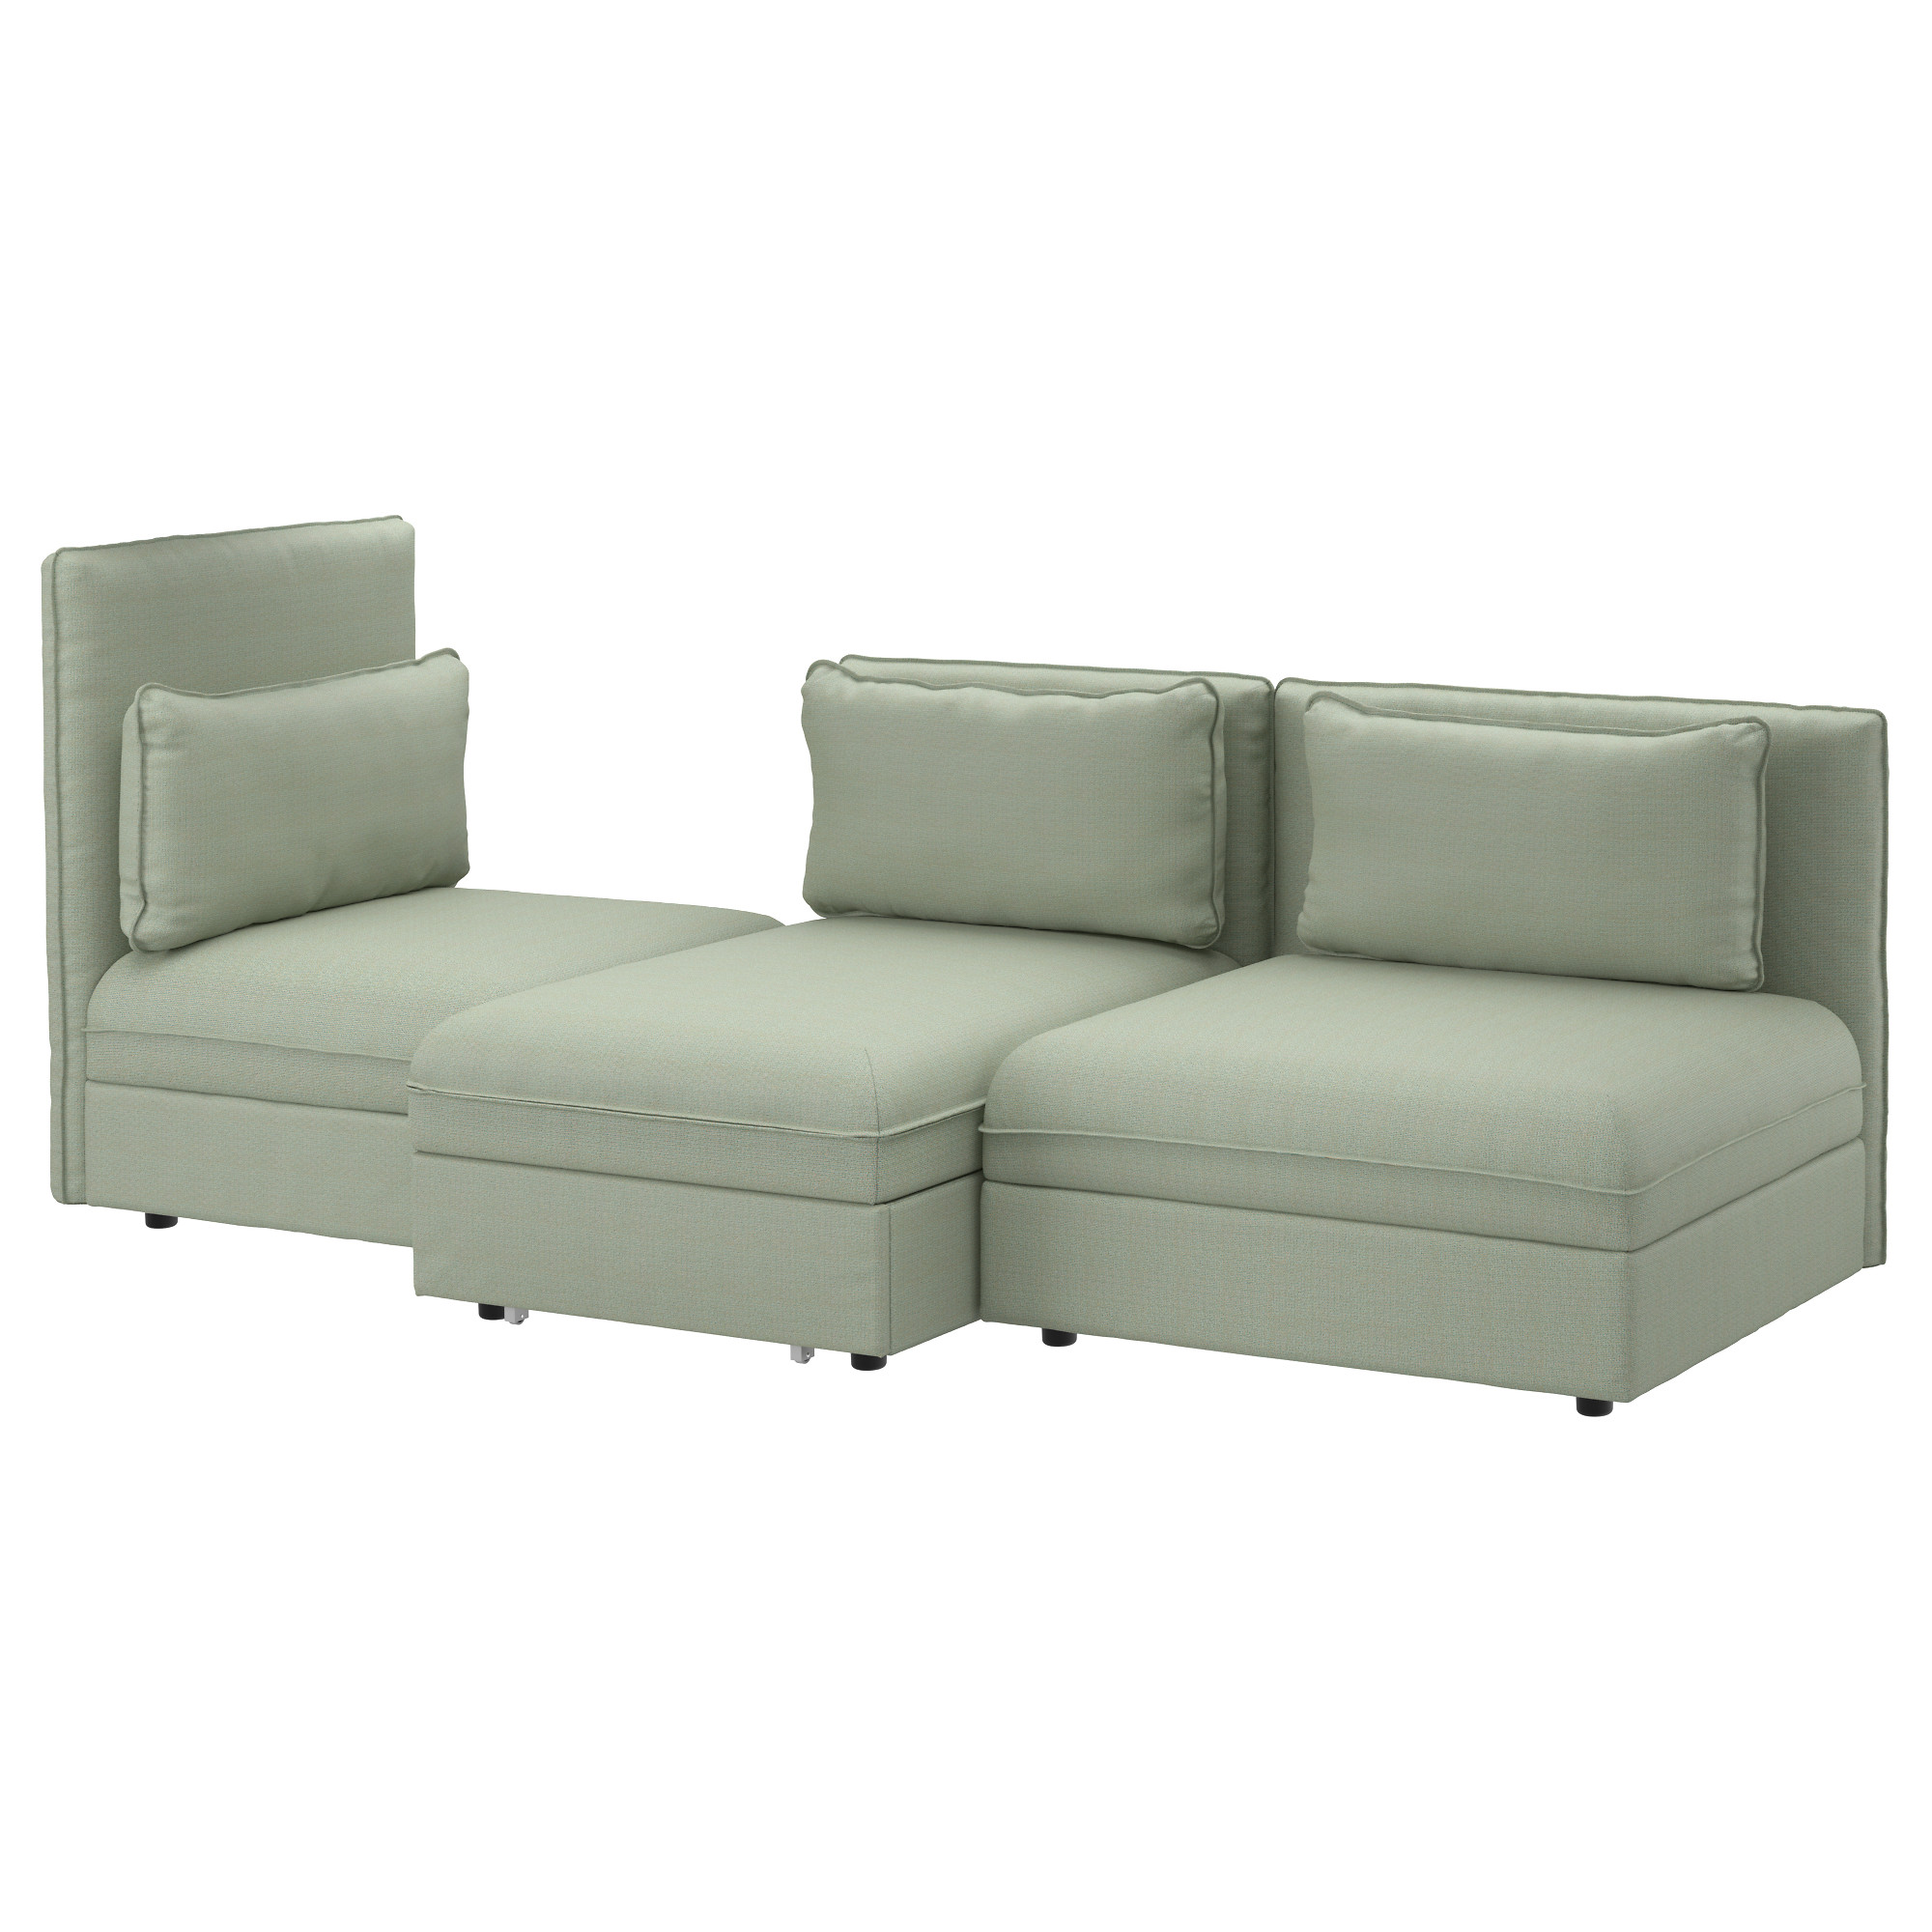 Flip chair bed ikea - Vallentuna Sleeper Sectional 3 Seat Hillared Green Width 107 1 2